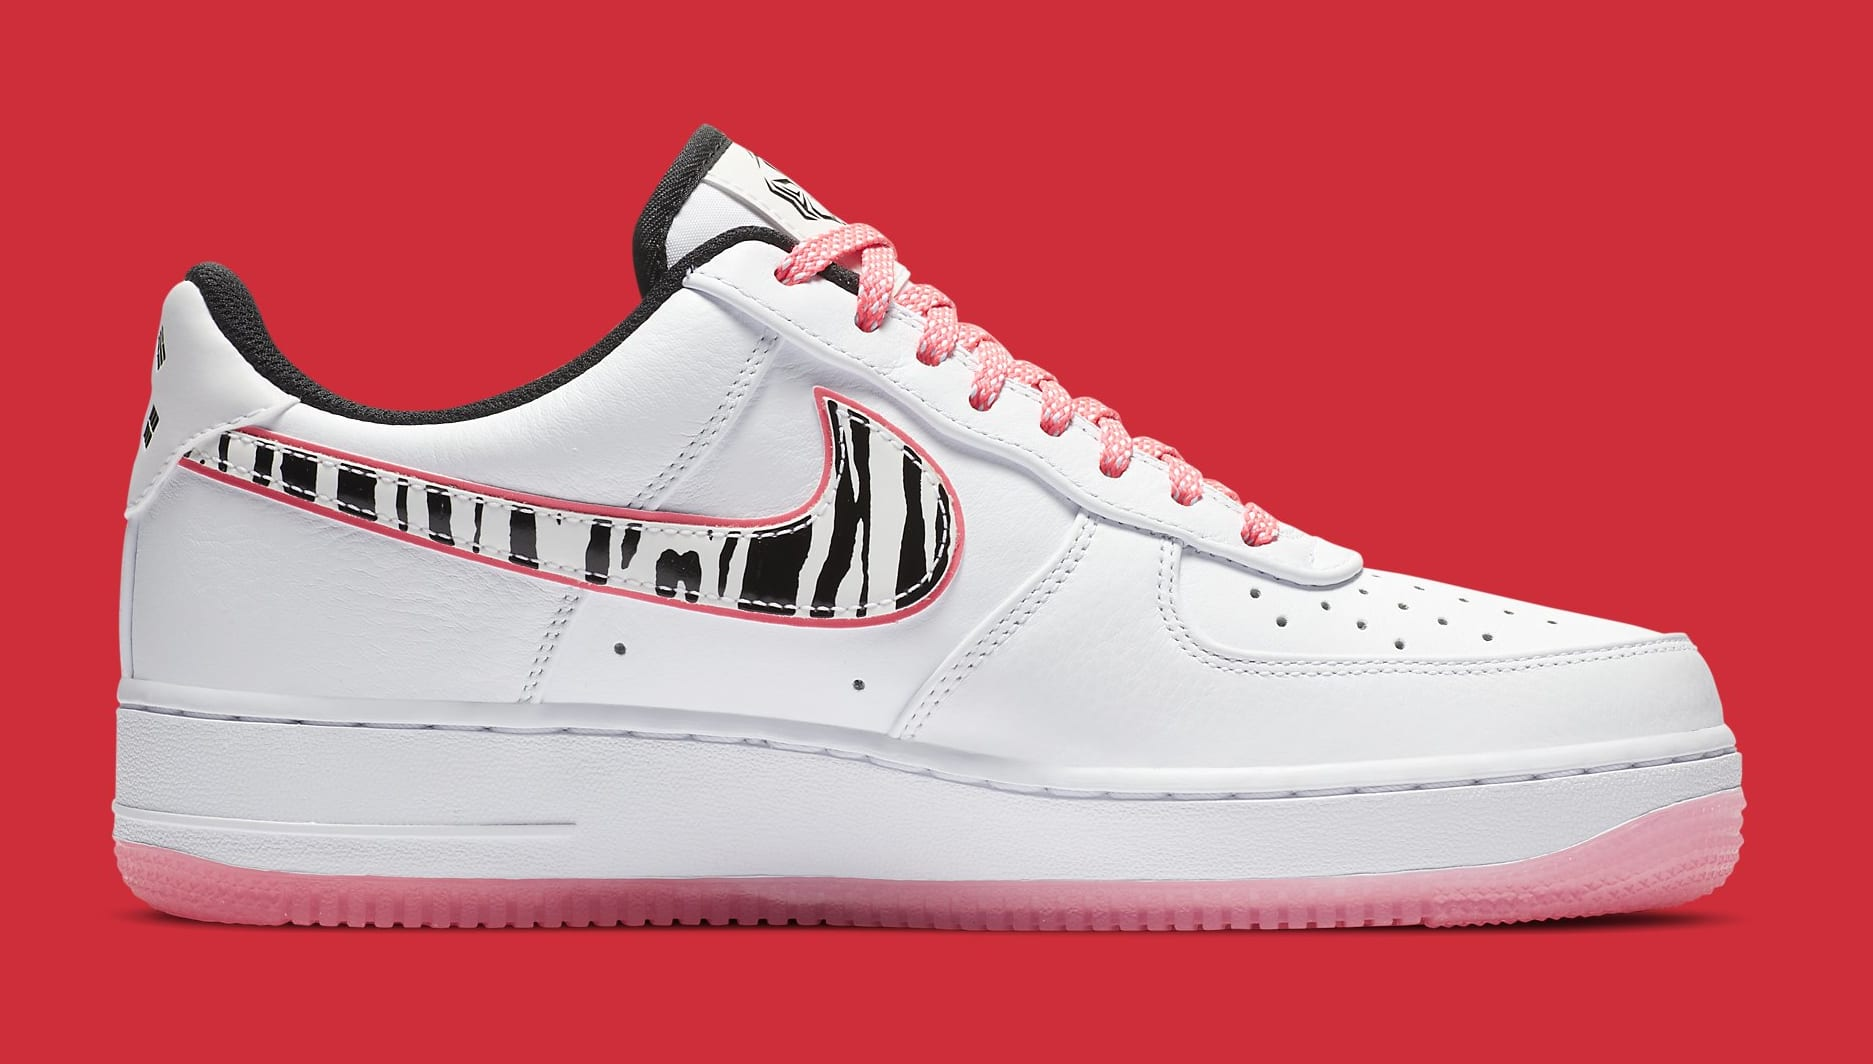 Nike Air Force 1 Low 'South Korea' CW3919-100 Medial